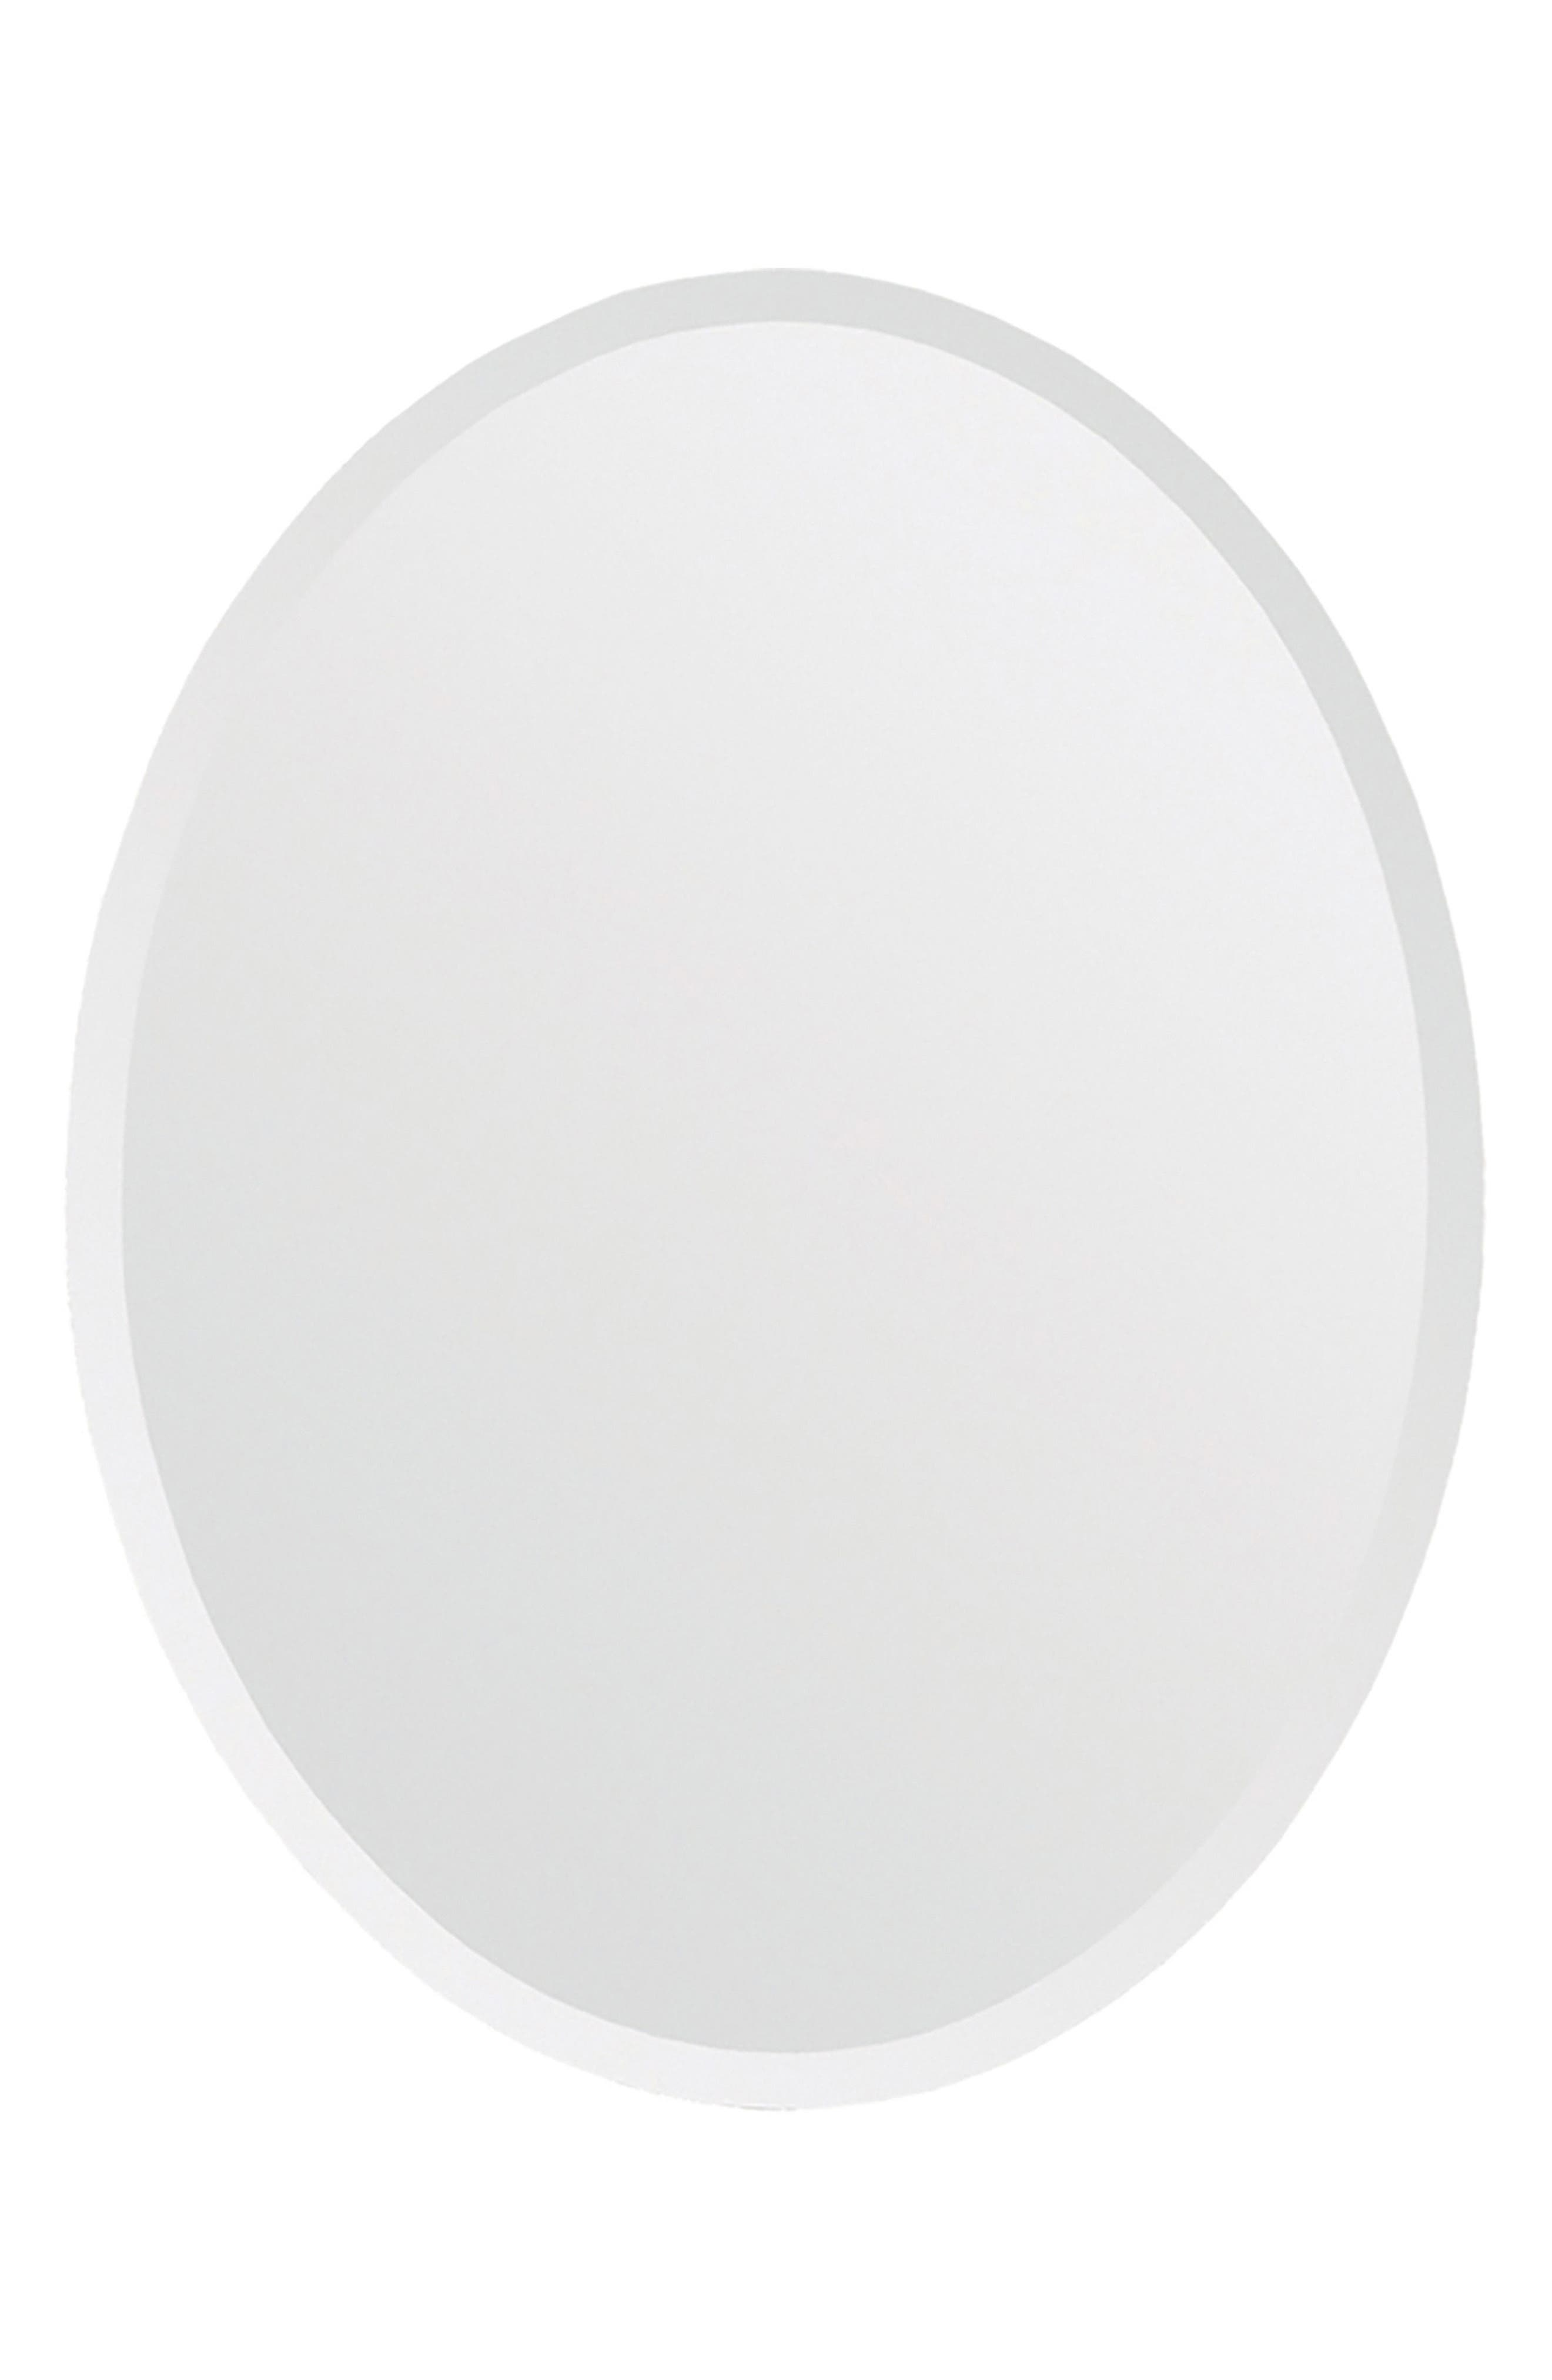 Renwil Zsa Zsa Oval Mirror